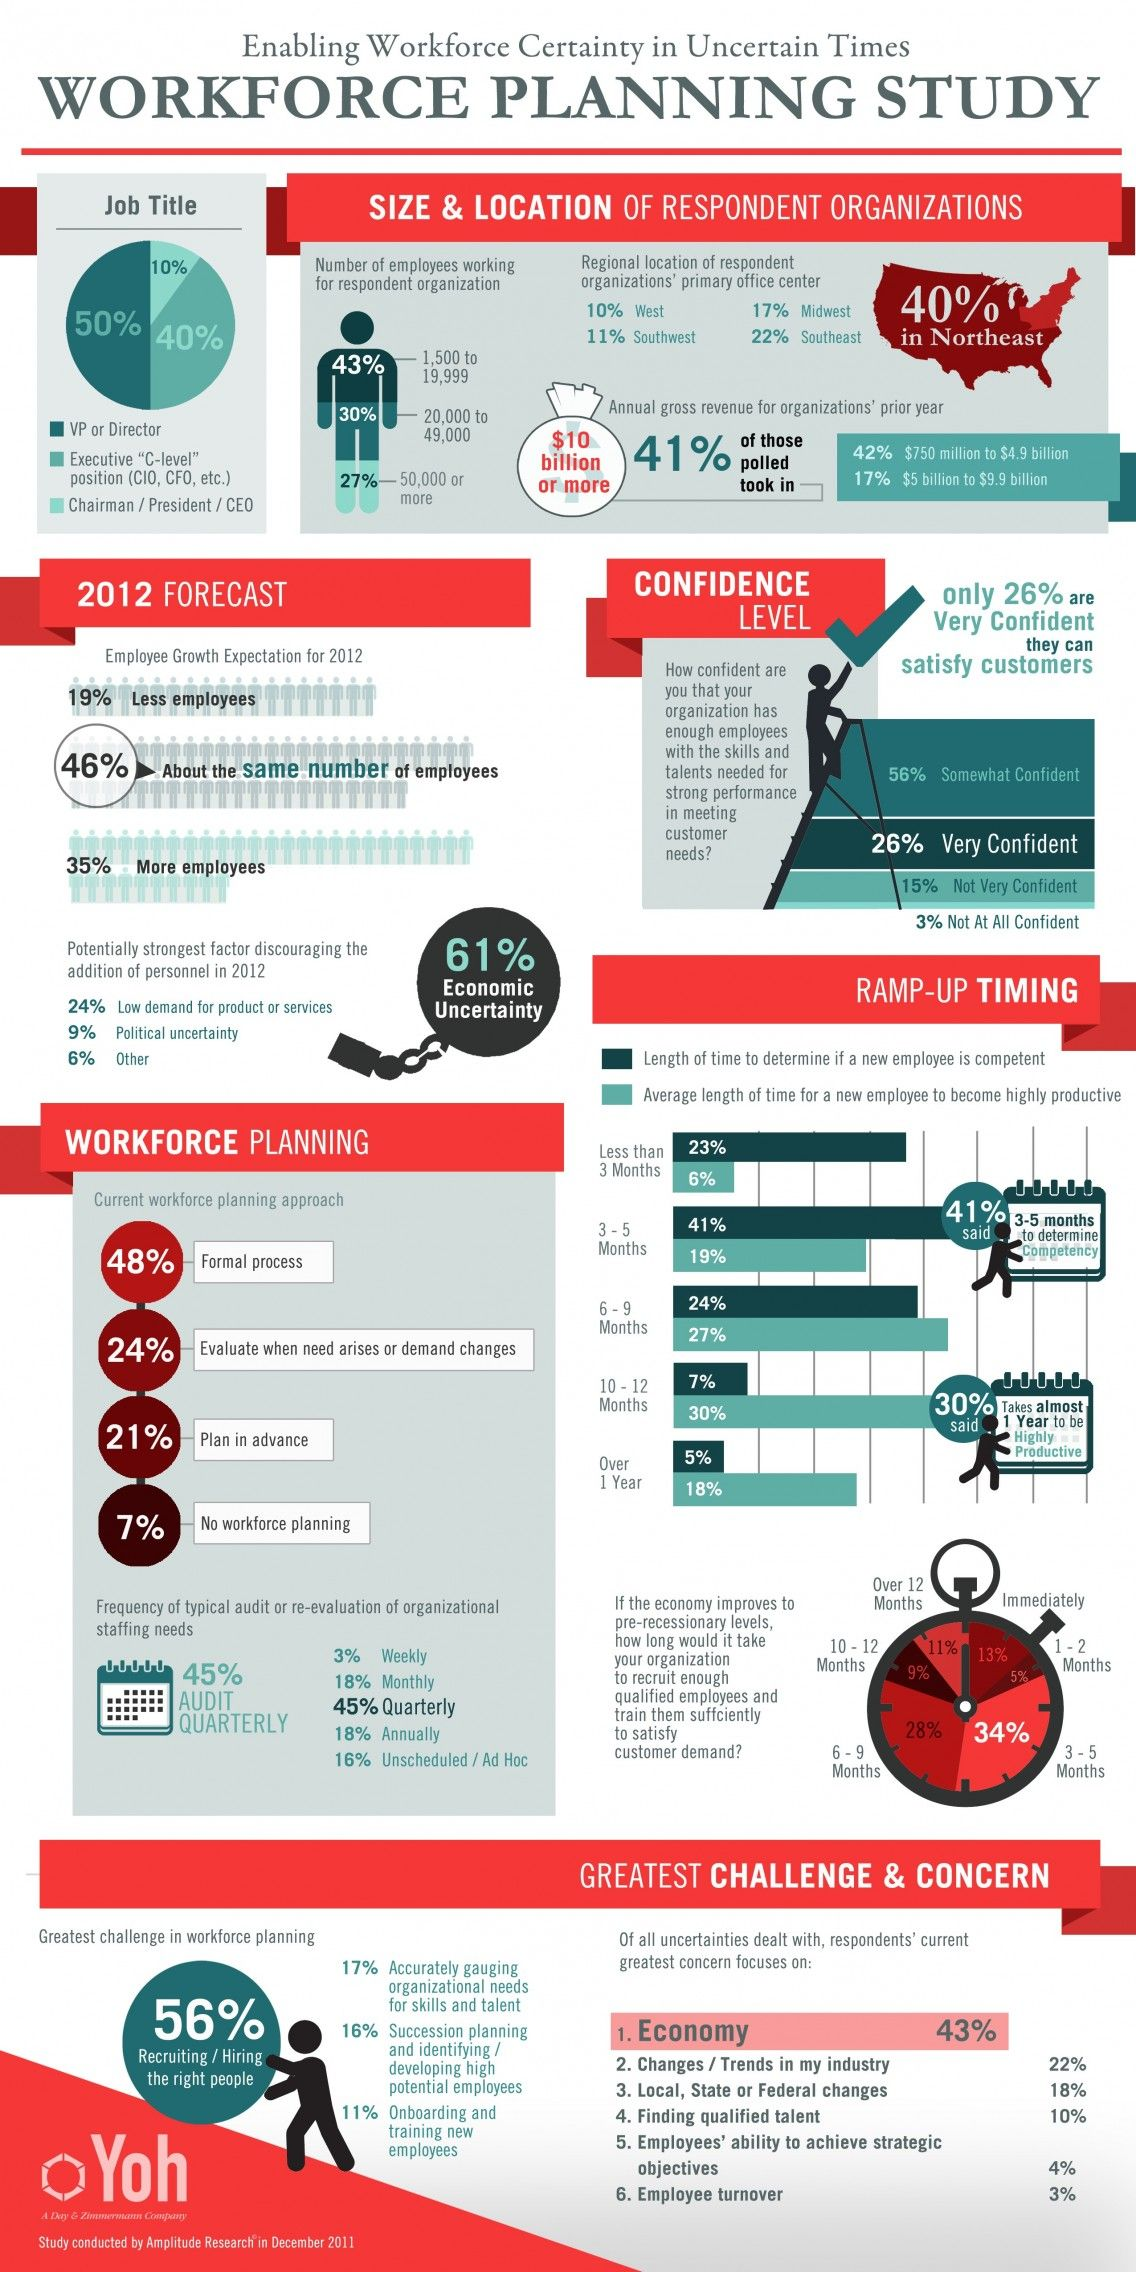 Workforce Planning Study Infographic  ComplianceandsafetyCom